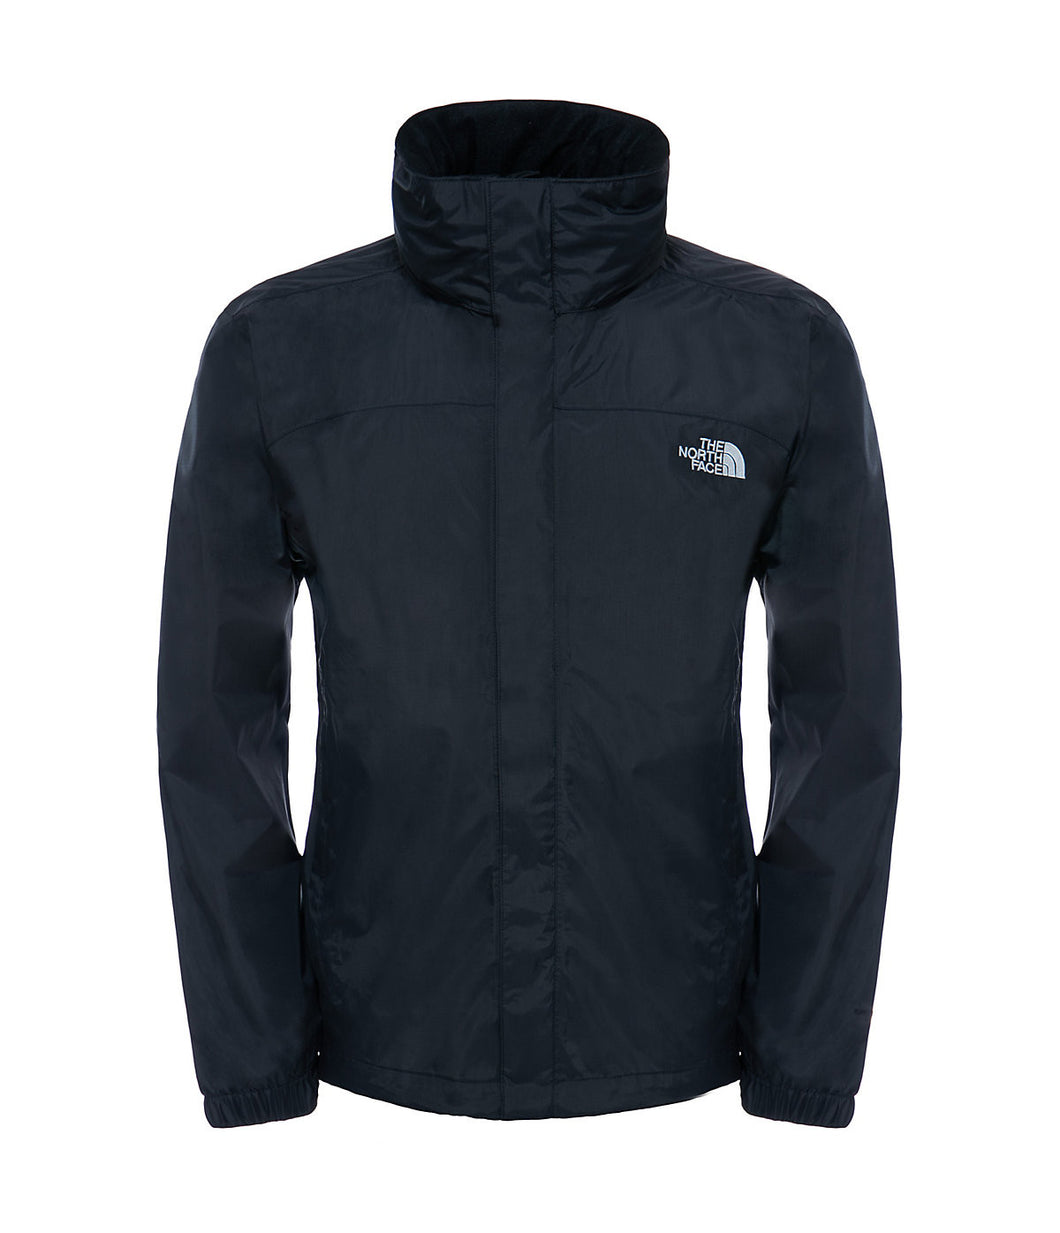 The North Face Resolve Jacket Black